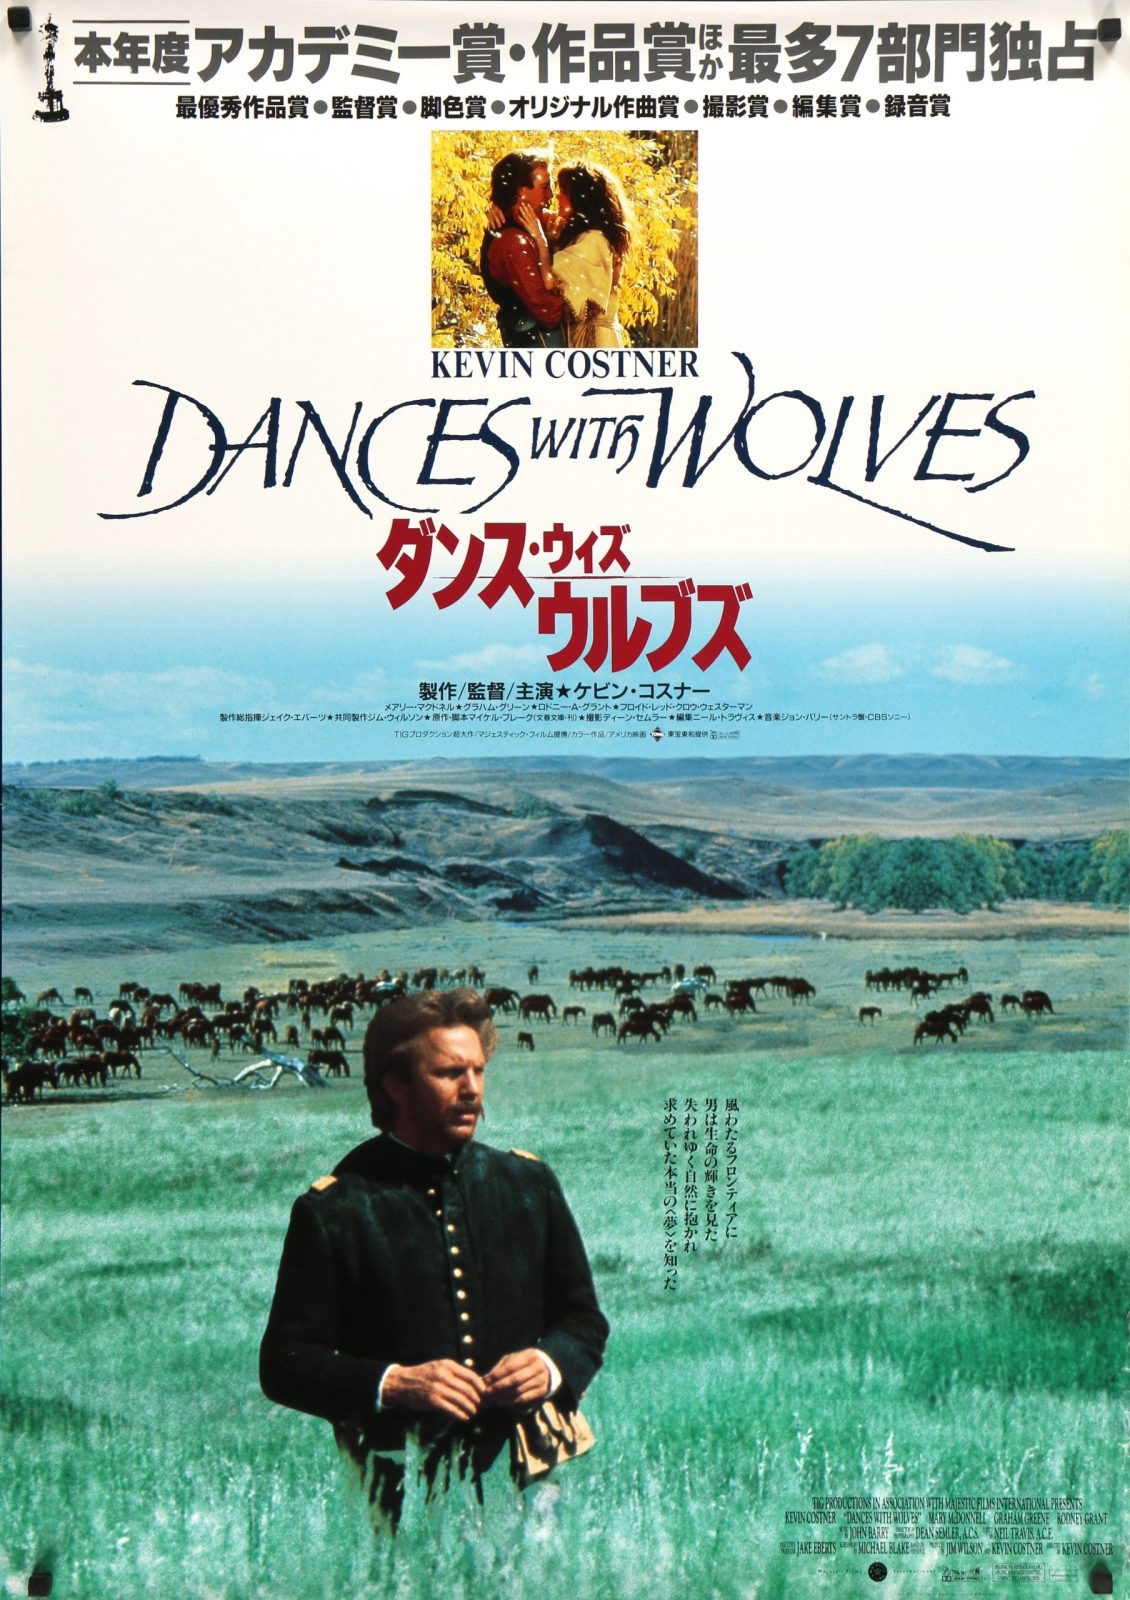 Danceswithwolves10 scaled